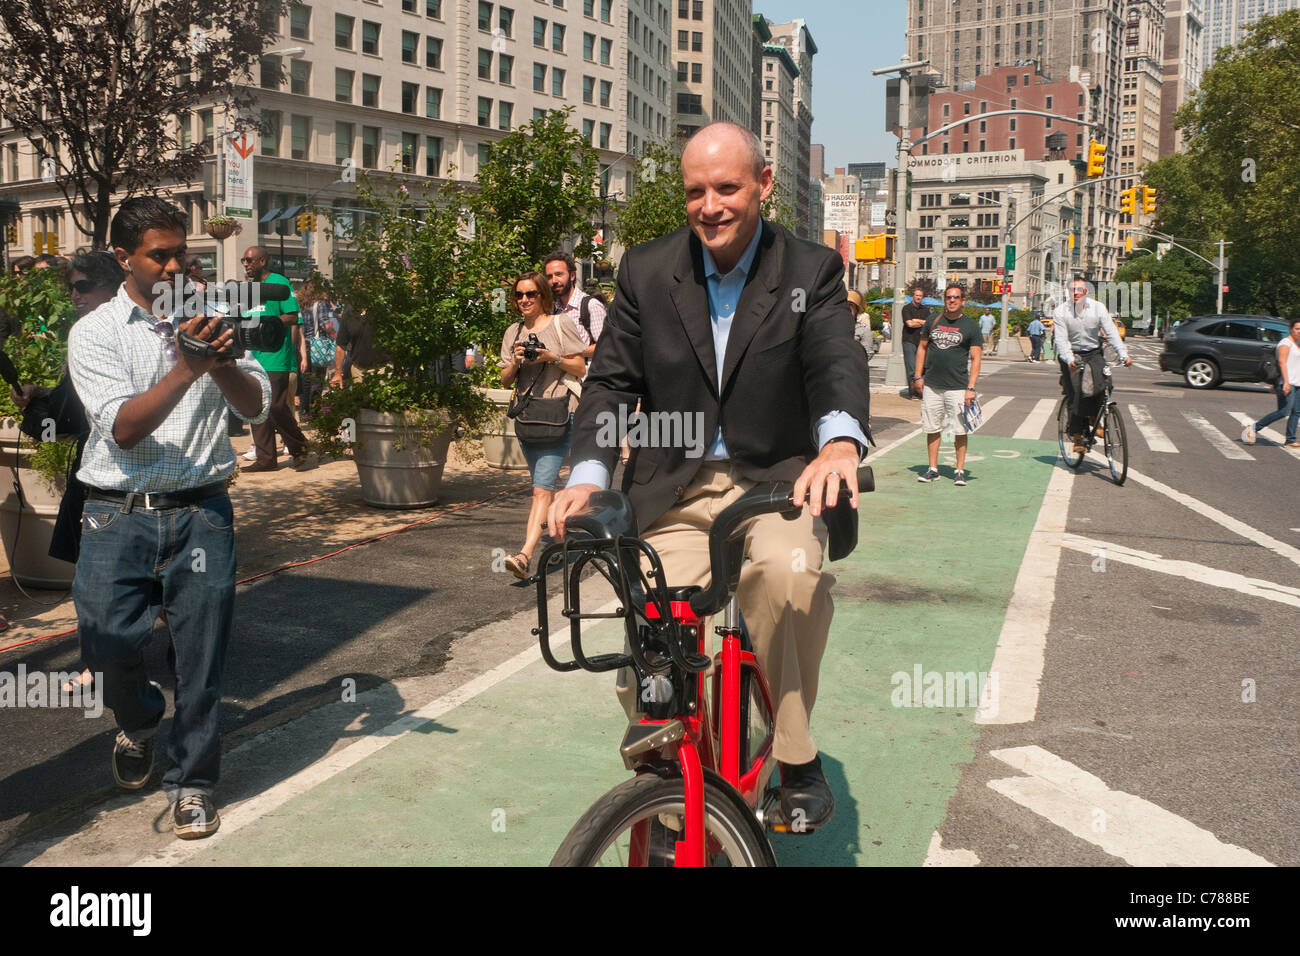 NYC Deputy Mayor Howard Wolfson riding a bike during a news conference on the City's new Bike Share program. - Stock Image